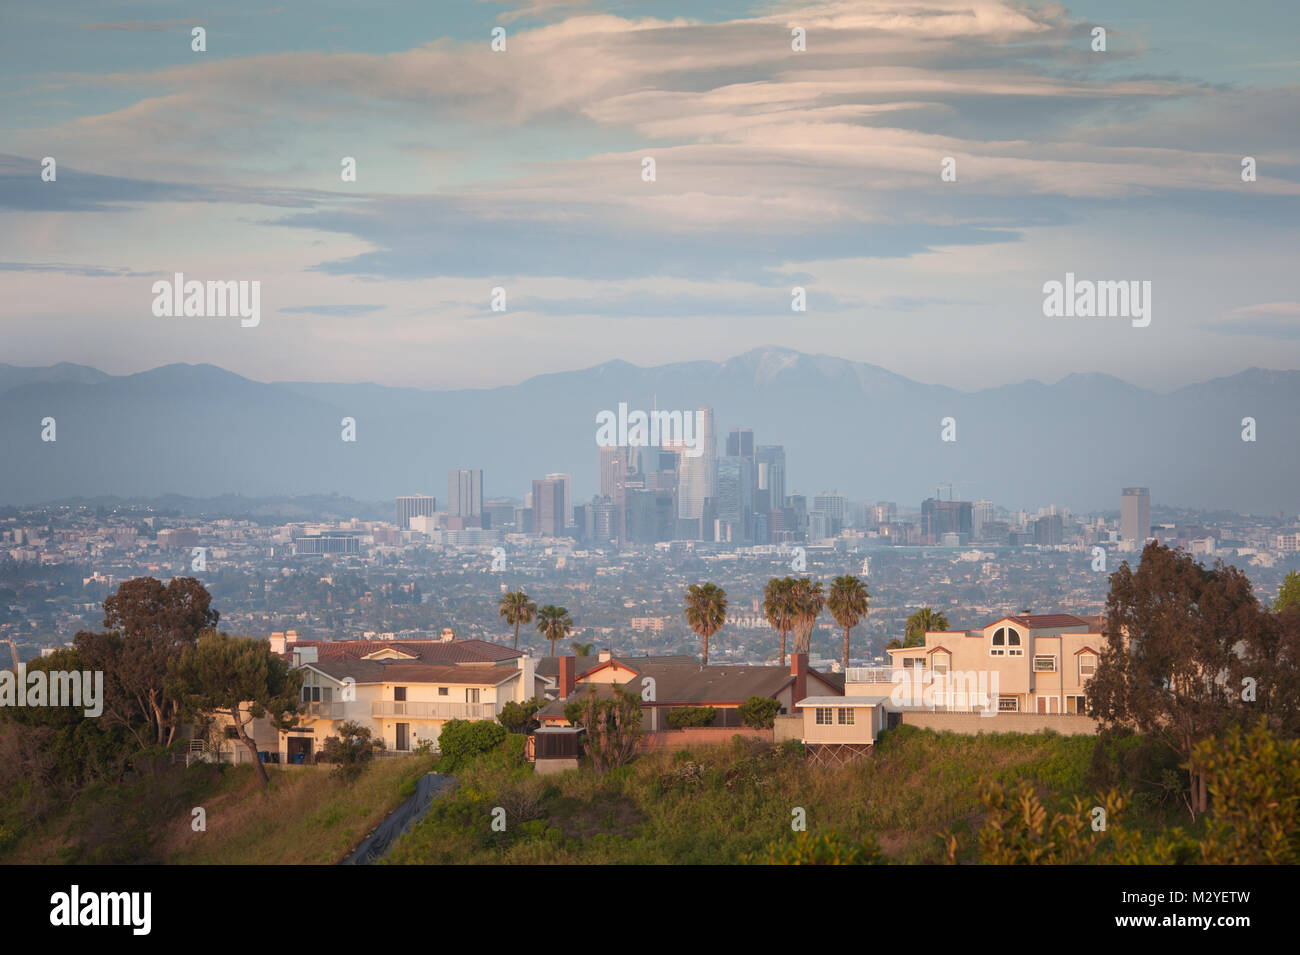 View of Downtown L.A with houses in the foreground photographed at sunset from the top of the Kenneth Hahn State Stock Photo